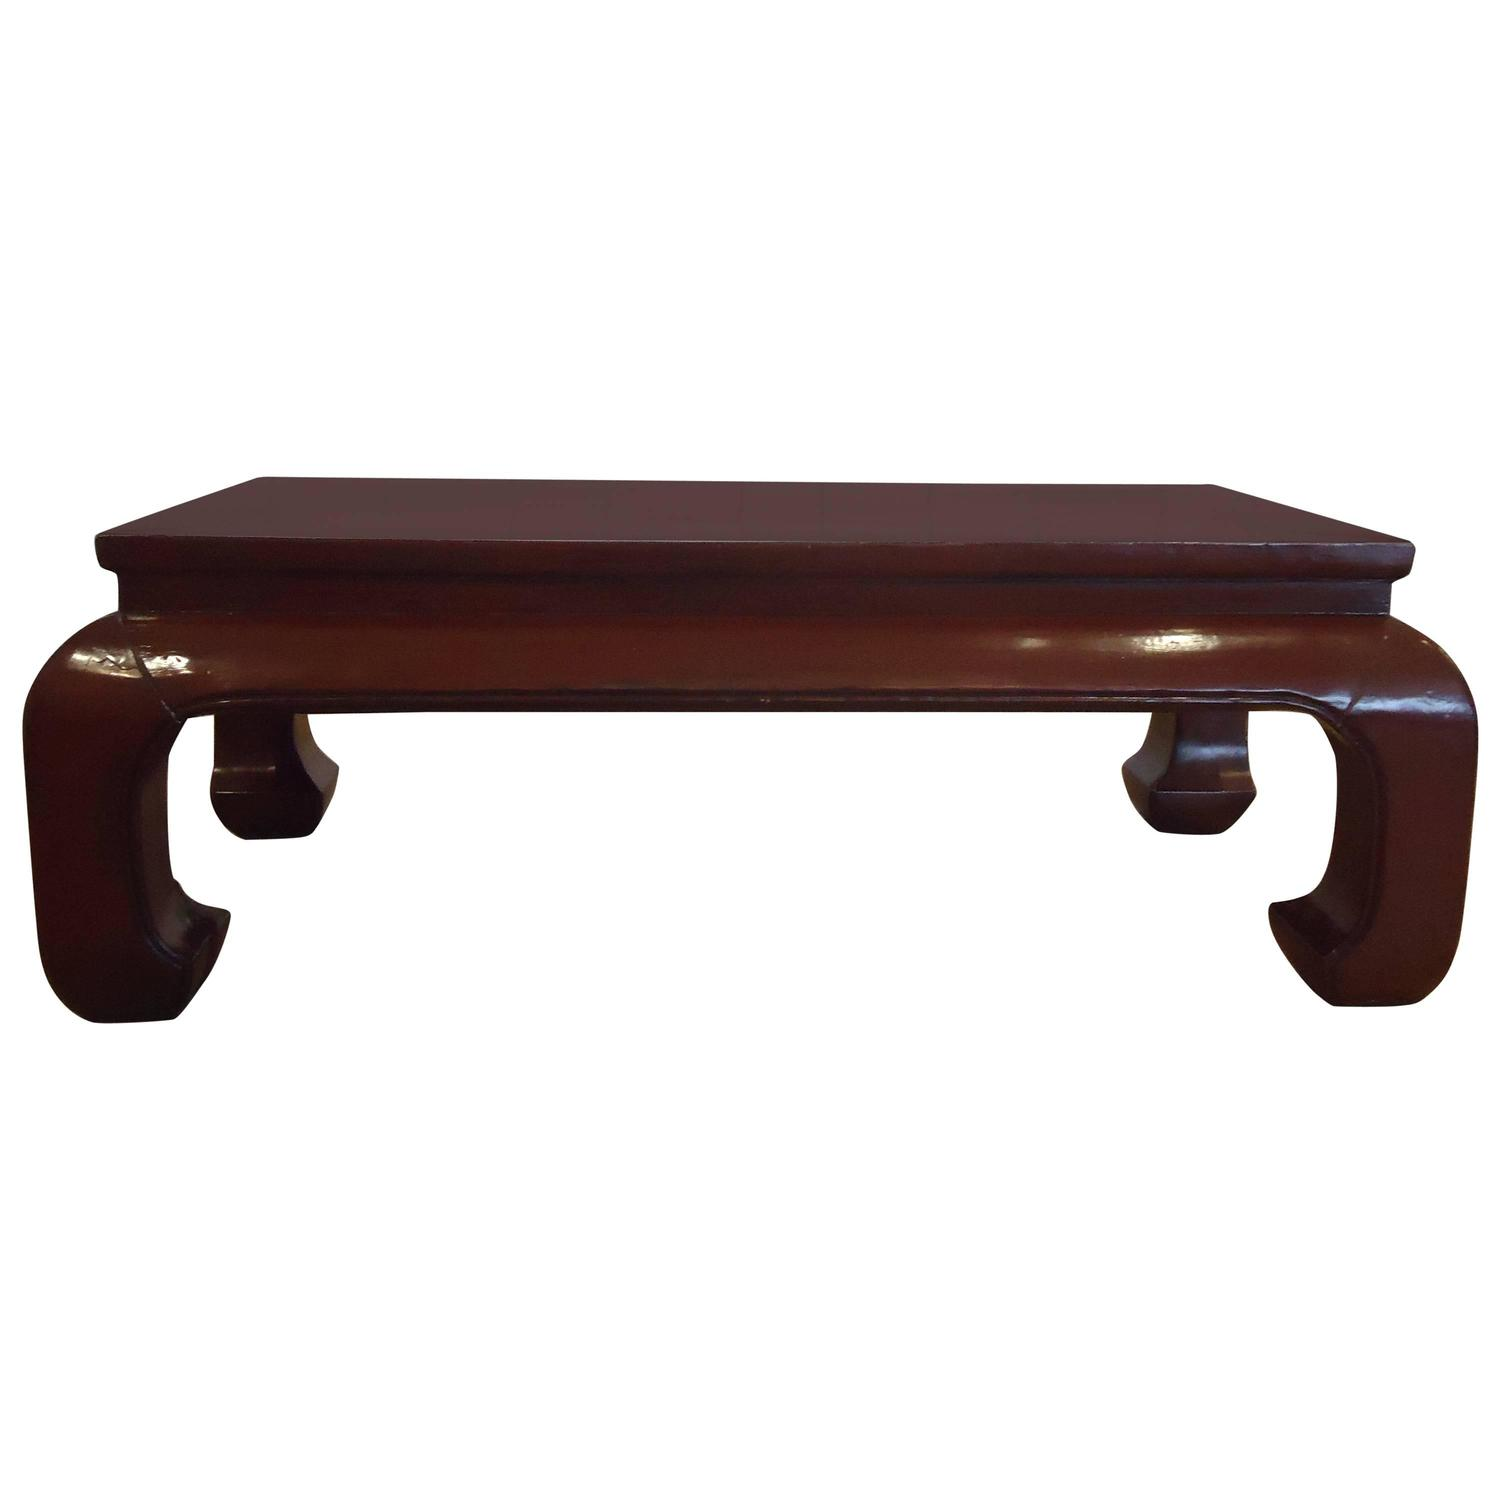 Stunning Dark Red Lacquer Chinese Coffee Table at 1stdibs